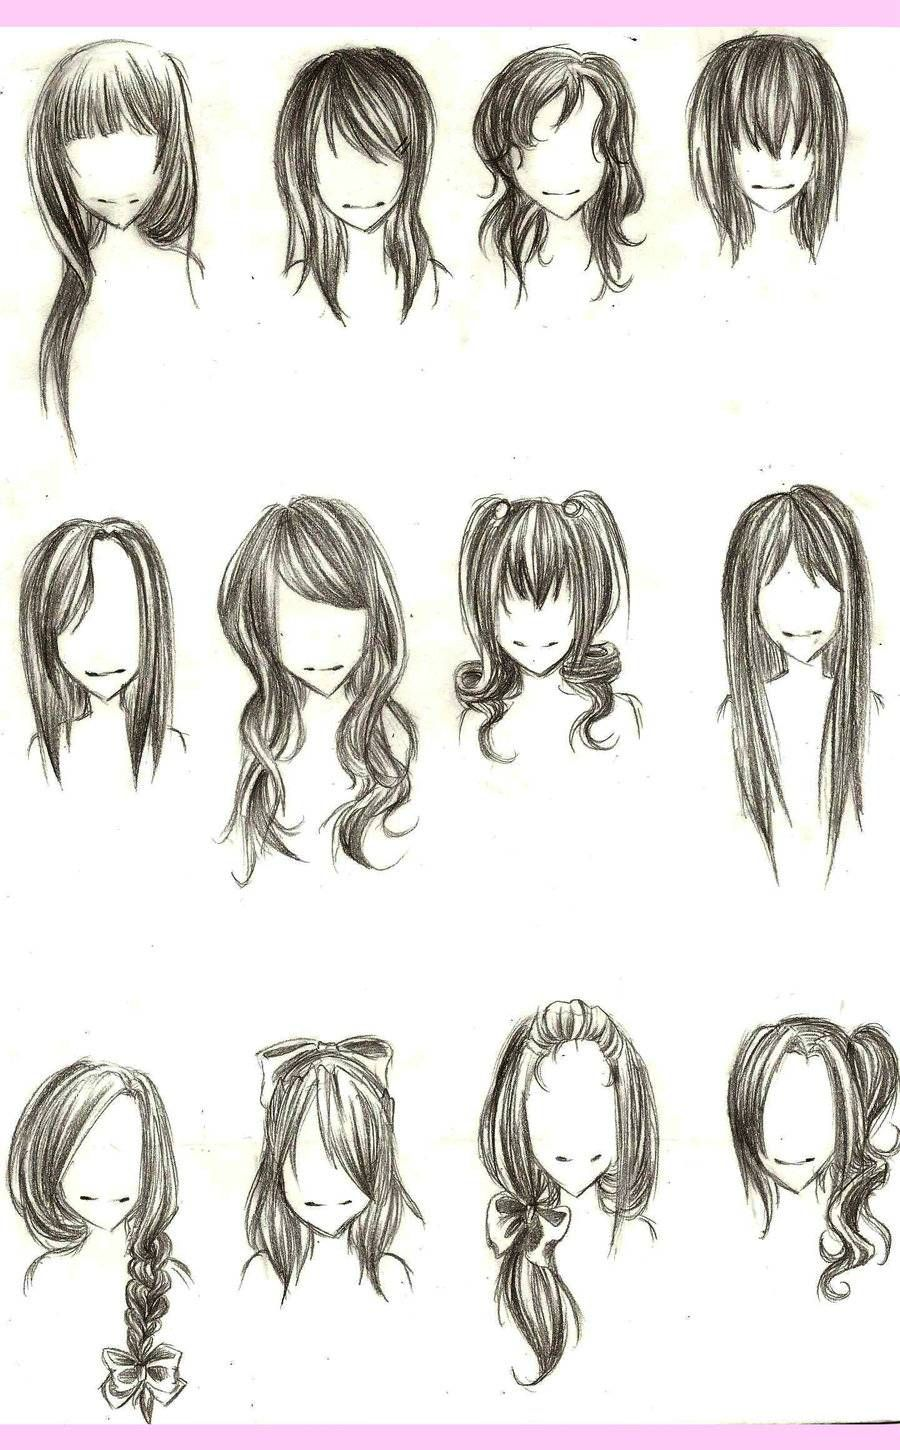 Emo boy hairstyle hd wallpaper anime hairstyles for girls sketch hd images  hd wallpapers